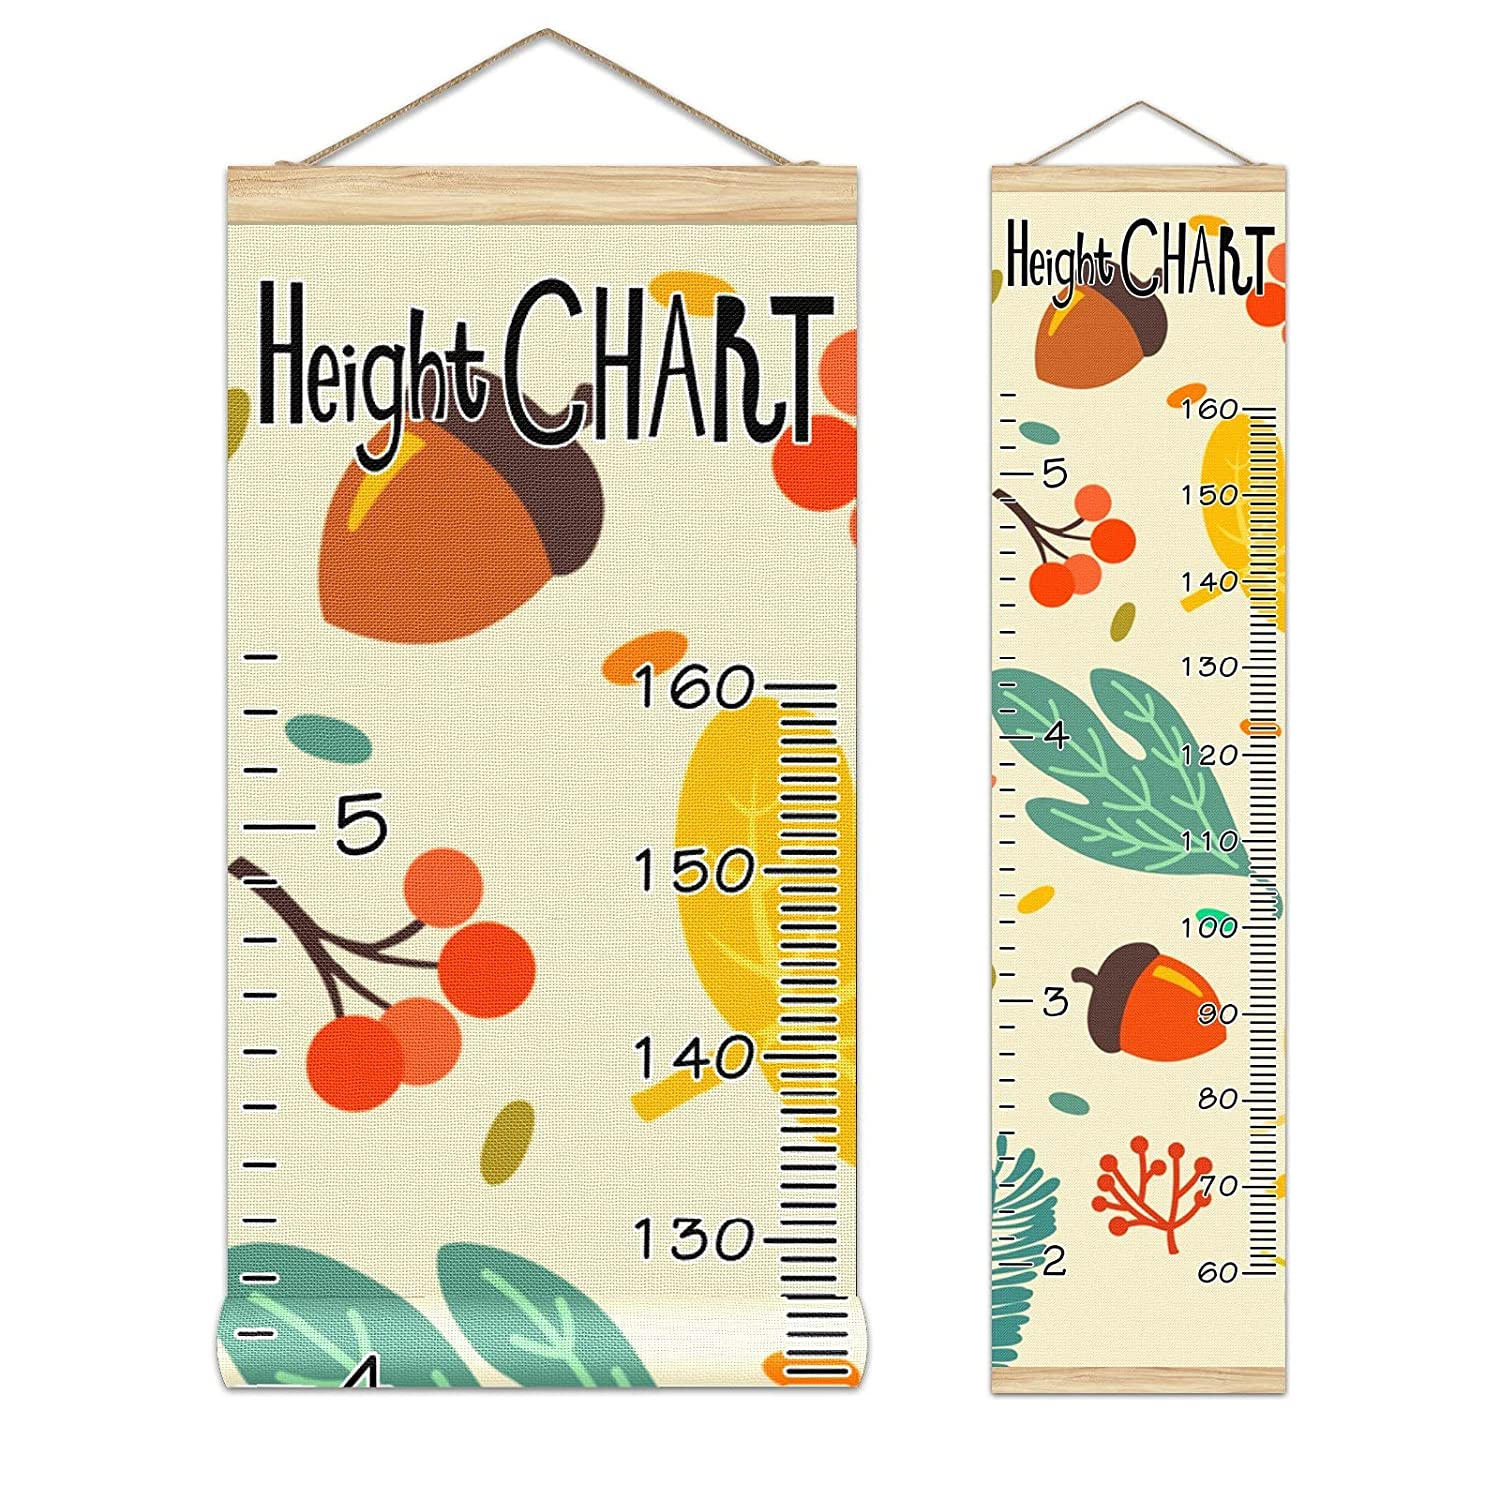 Growth Chart Fort Worth Mall Max 57% OFF Kid's Height Autumn Acorns-01 Leaves